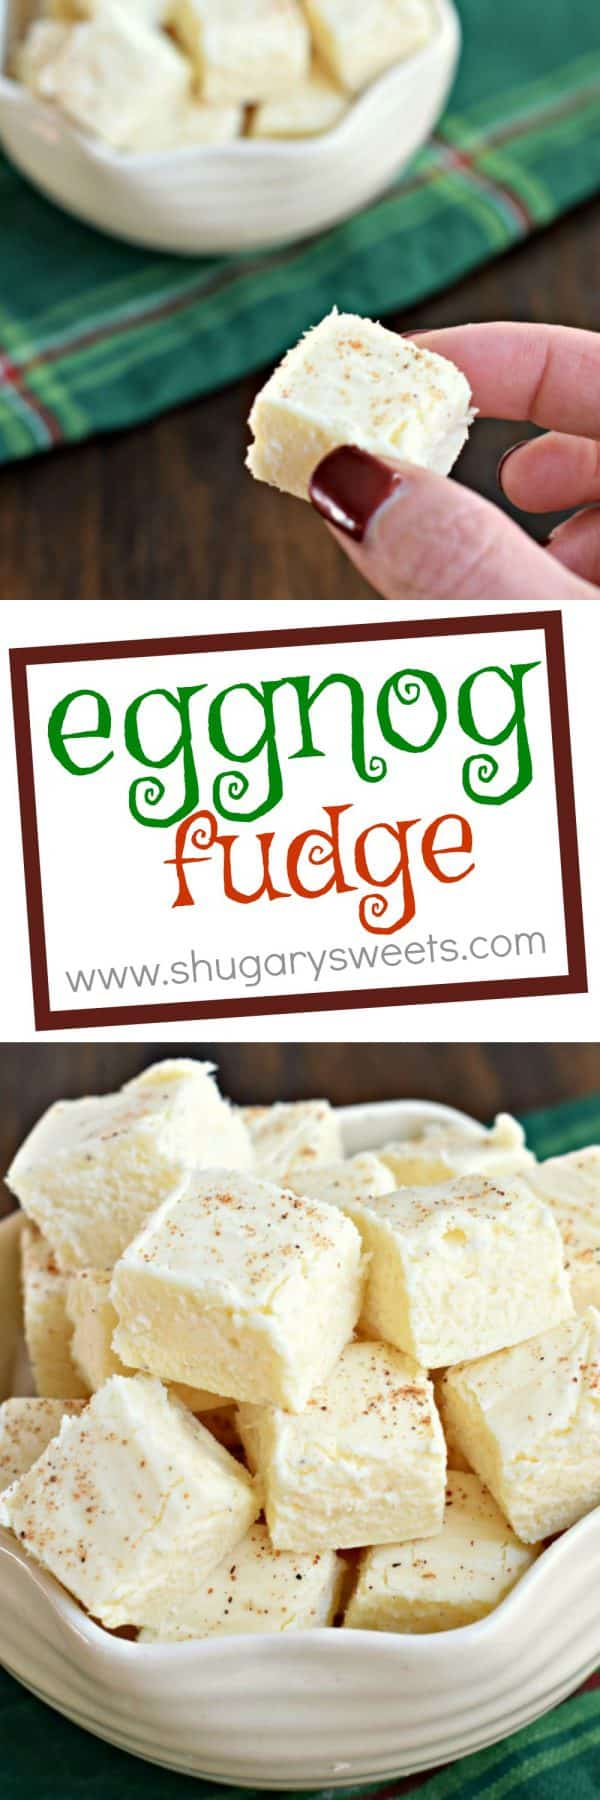 Eggnog Fudge is a better choice for your family cookie exchange. You'll stand out because it's awesome, and it's NOT a cookie!